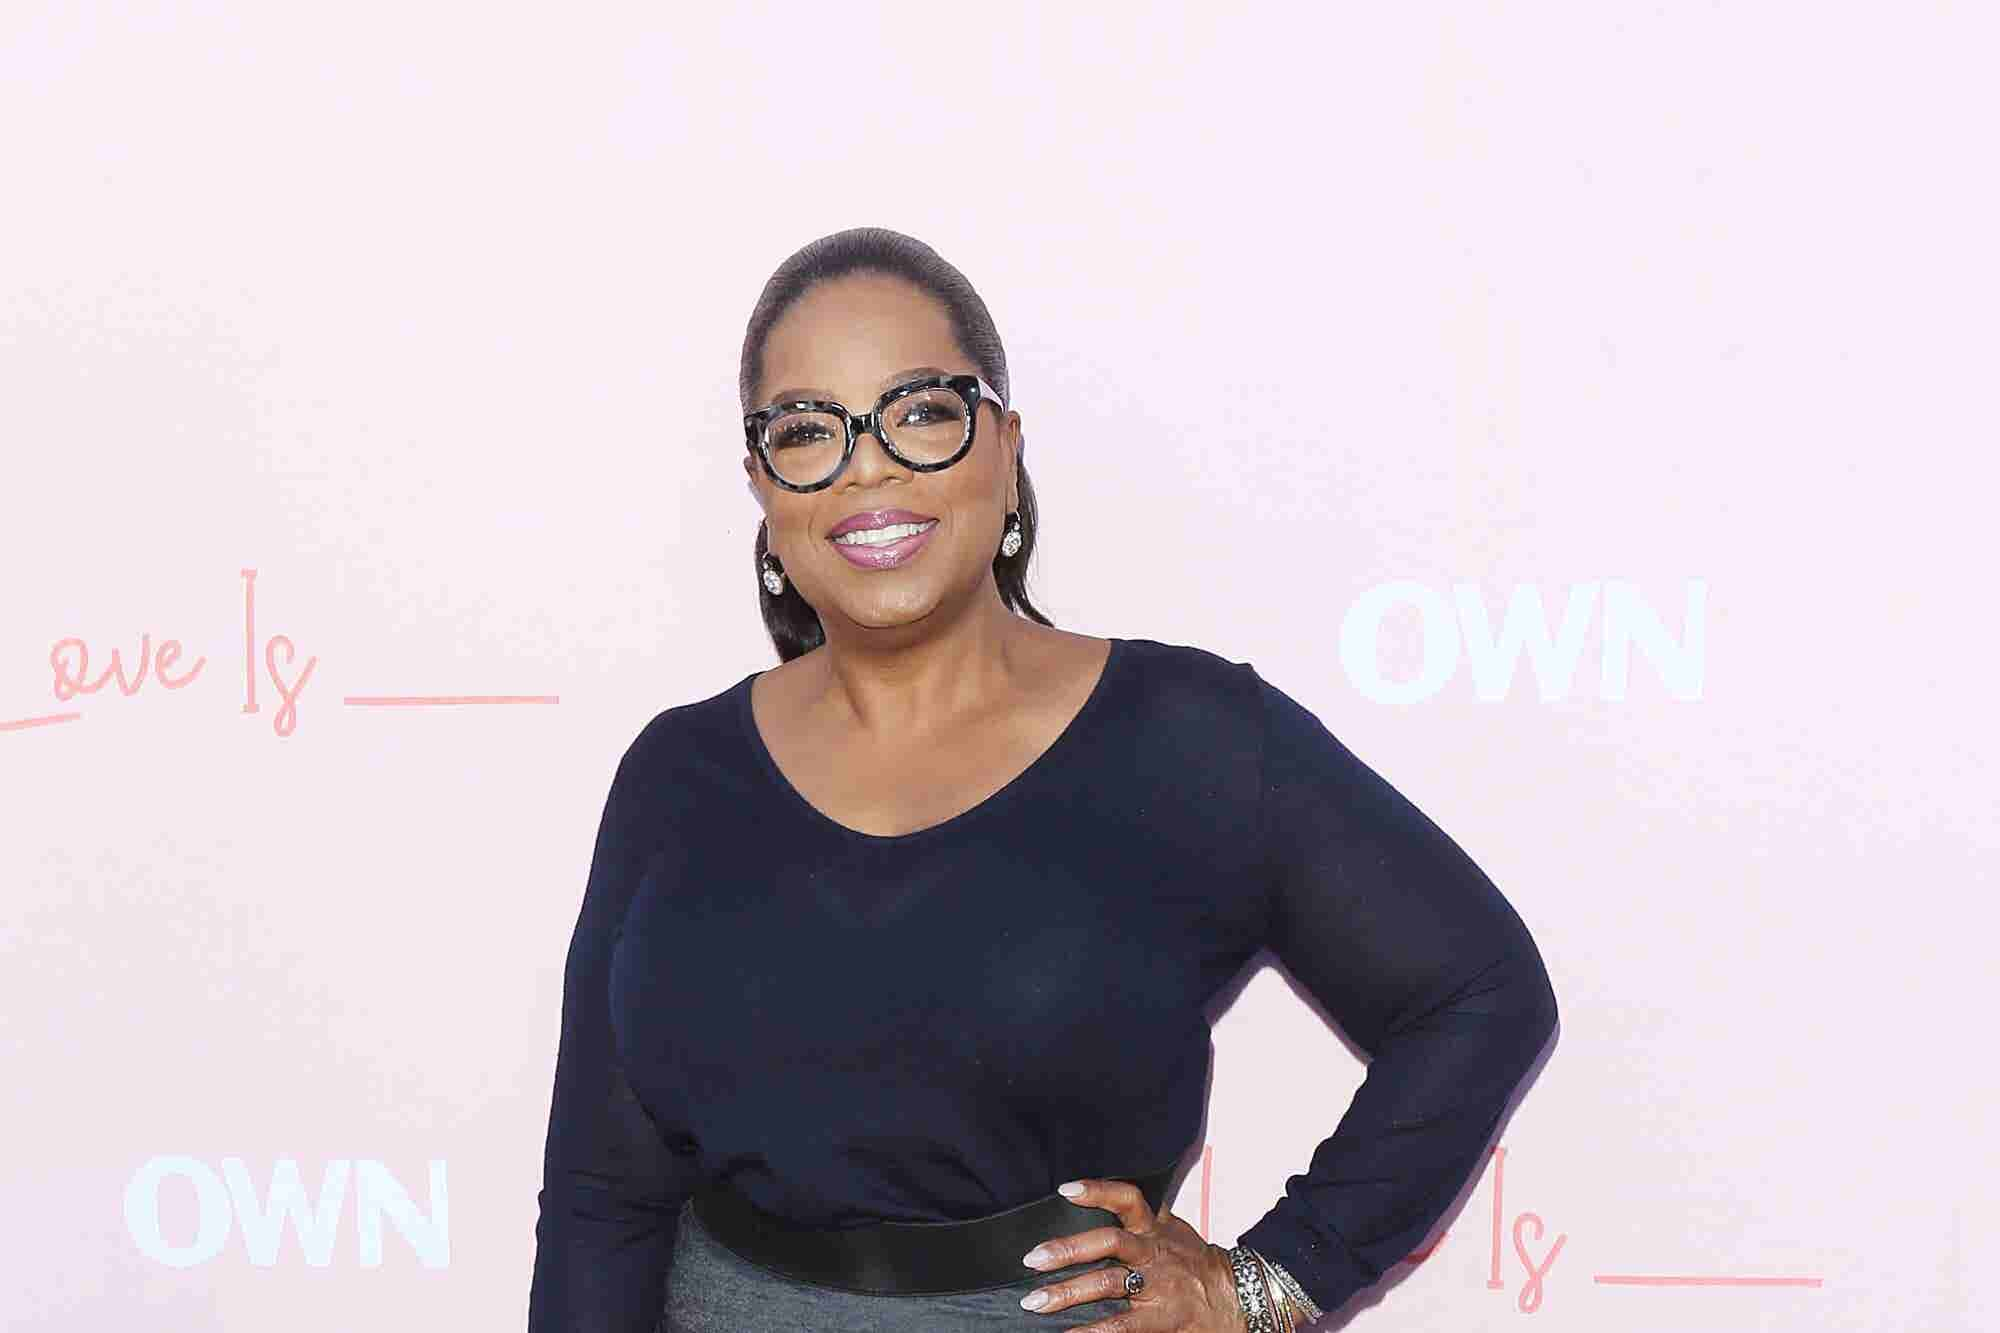 Lessons From the Rich and Famous: Manage Your Money Like Oprah to Avoid Going Into Debt Like Nicholas Cage